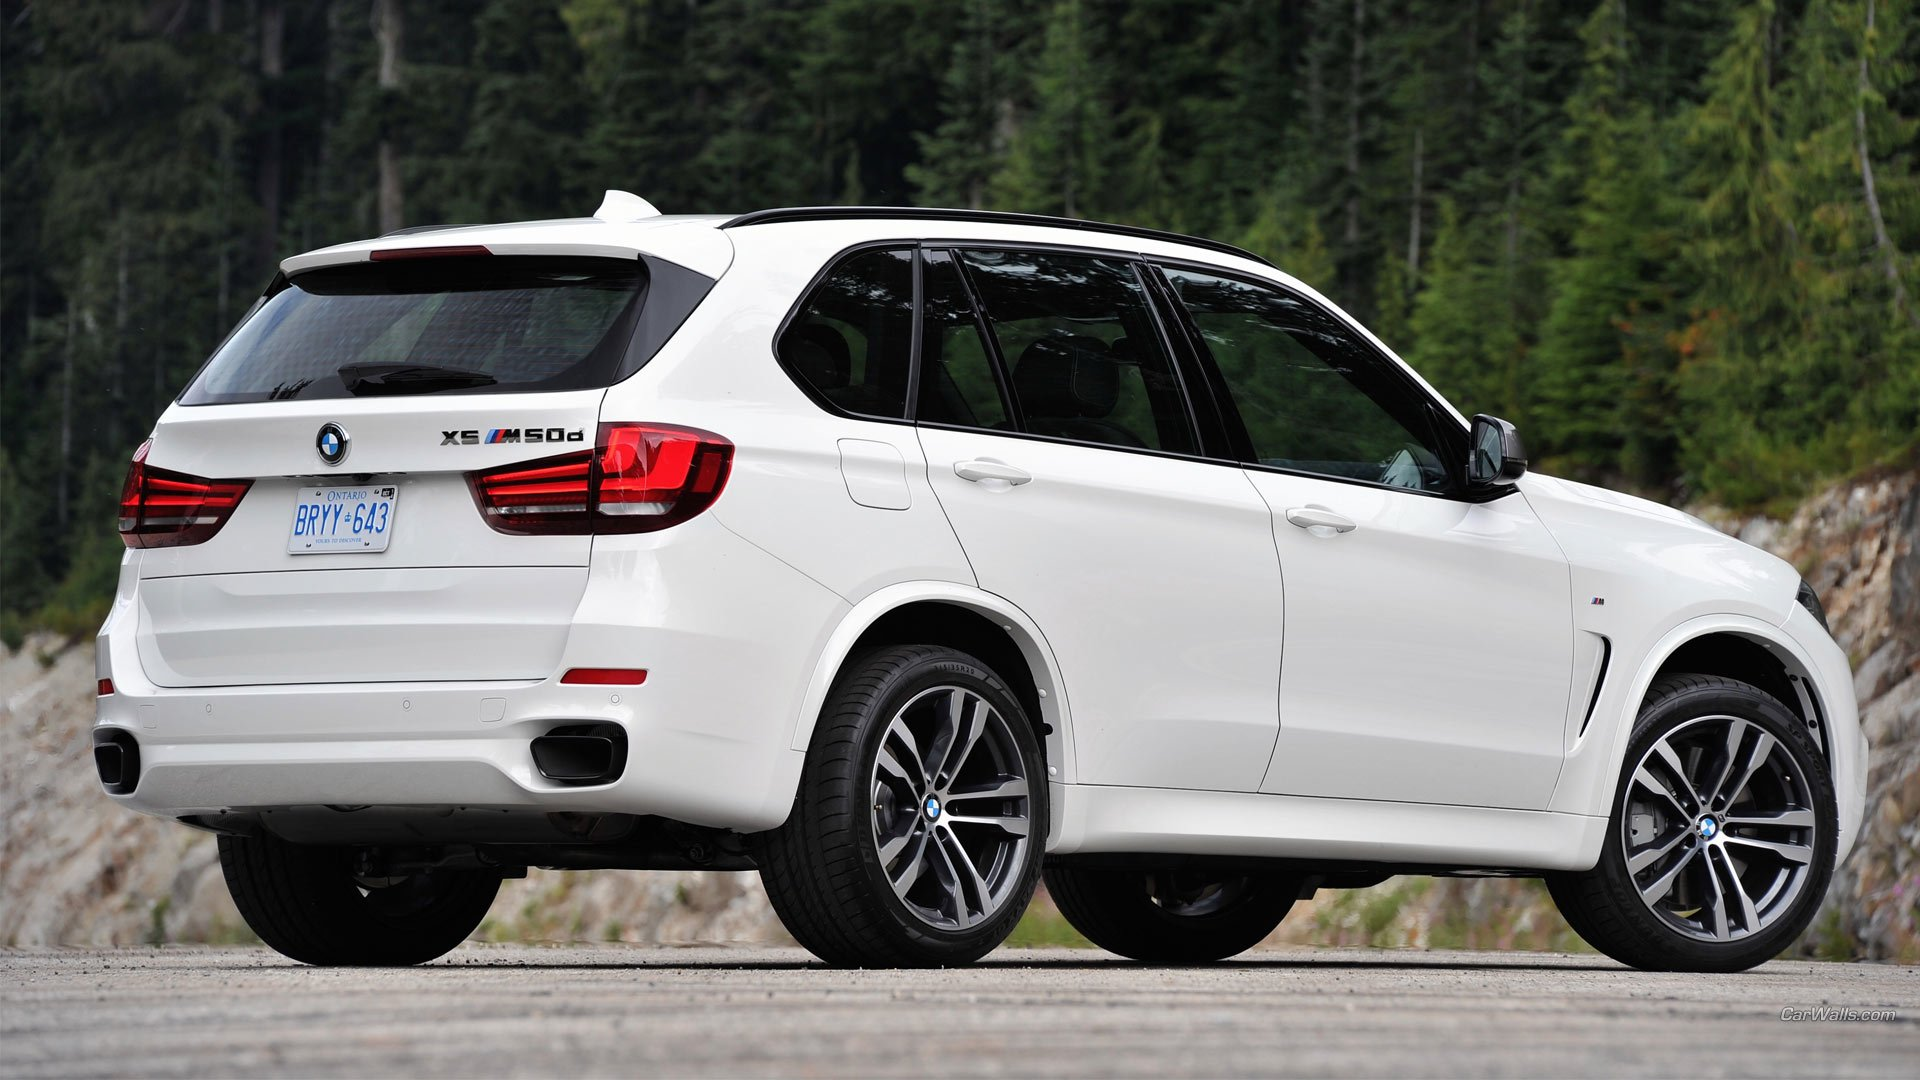 2014 Bmw X5 M50d Full Hd Wallpaper And Background Image